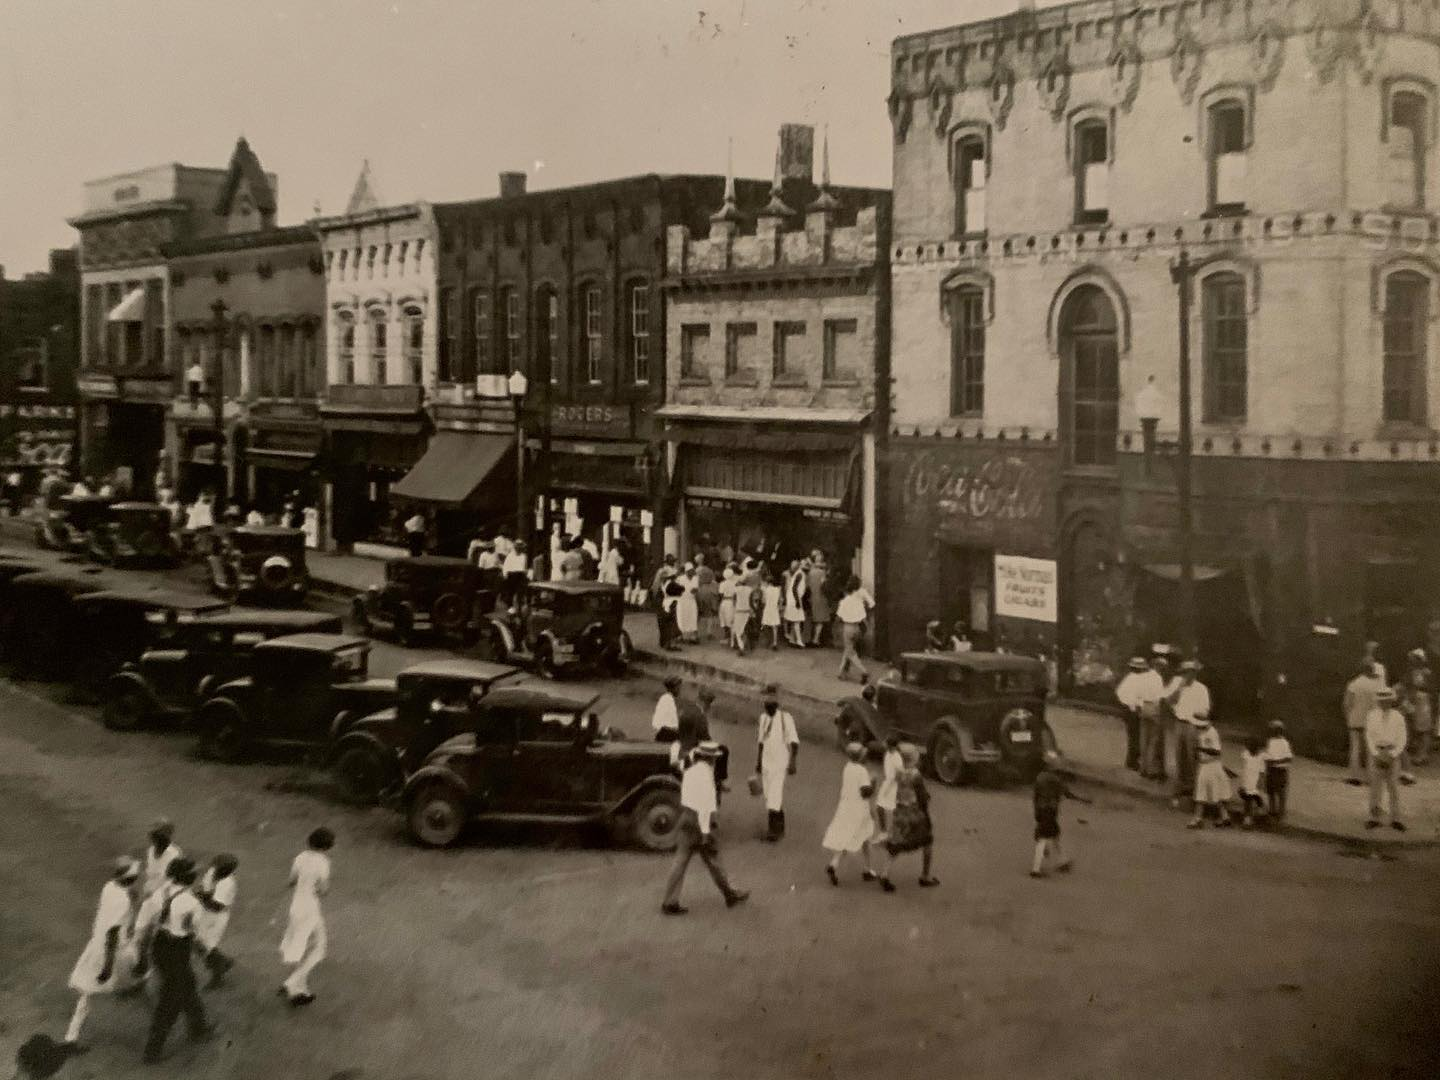 Newnan-Coweta County streets are busy with pedestrians and vintage cars in this black an white photo..